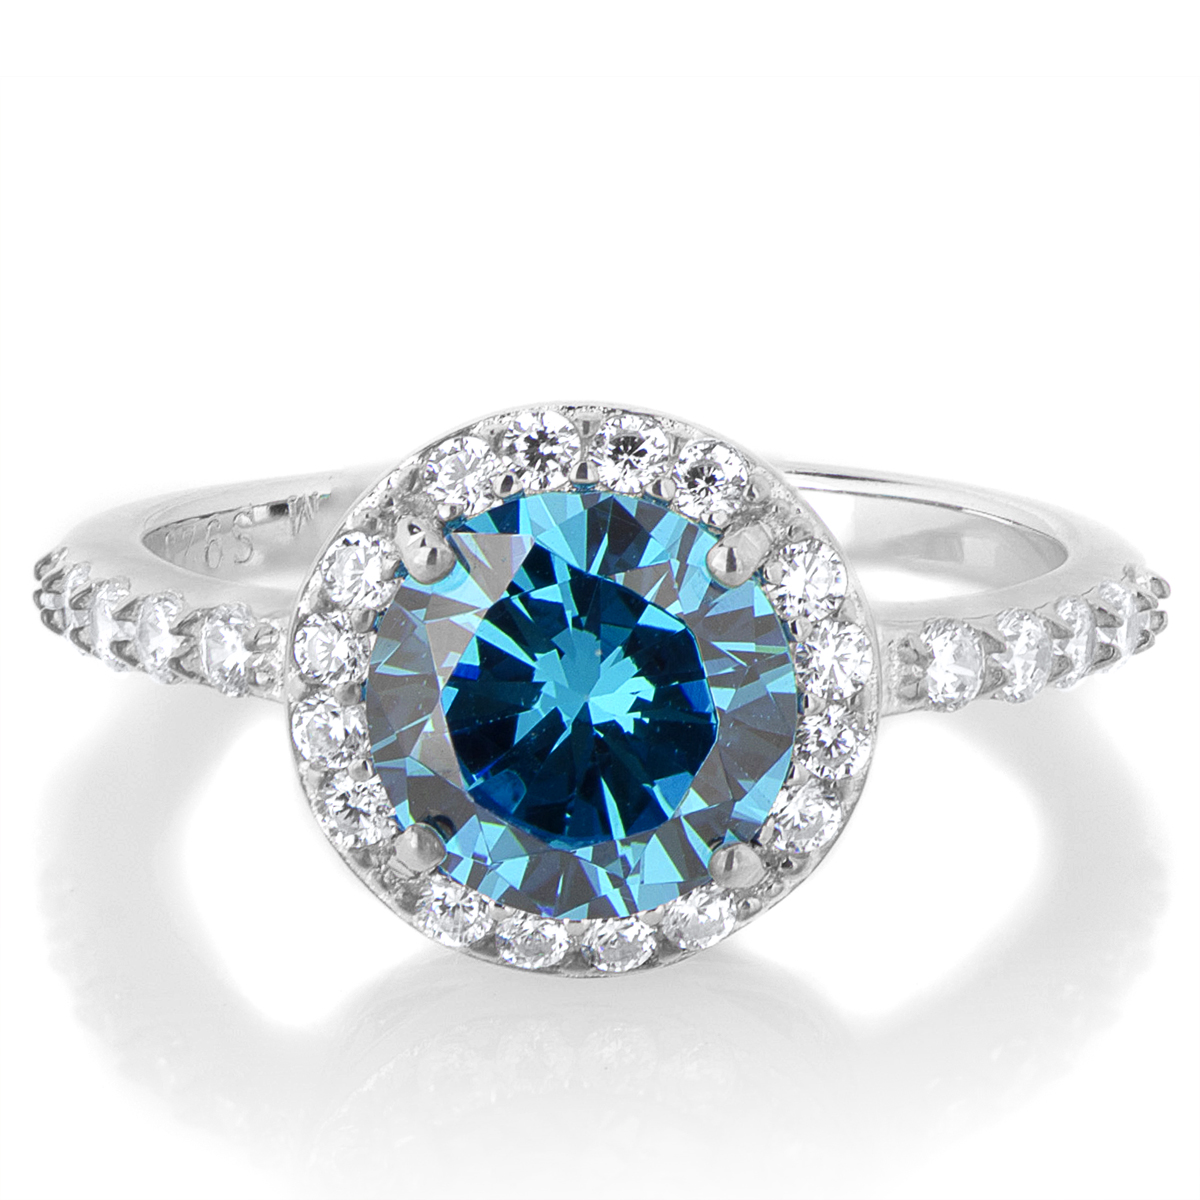 aquamarine march birthstone media rings for natural engagement promise her ring